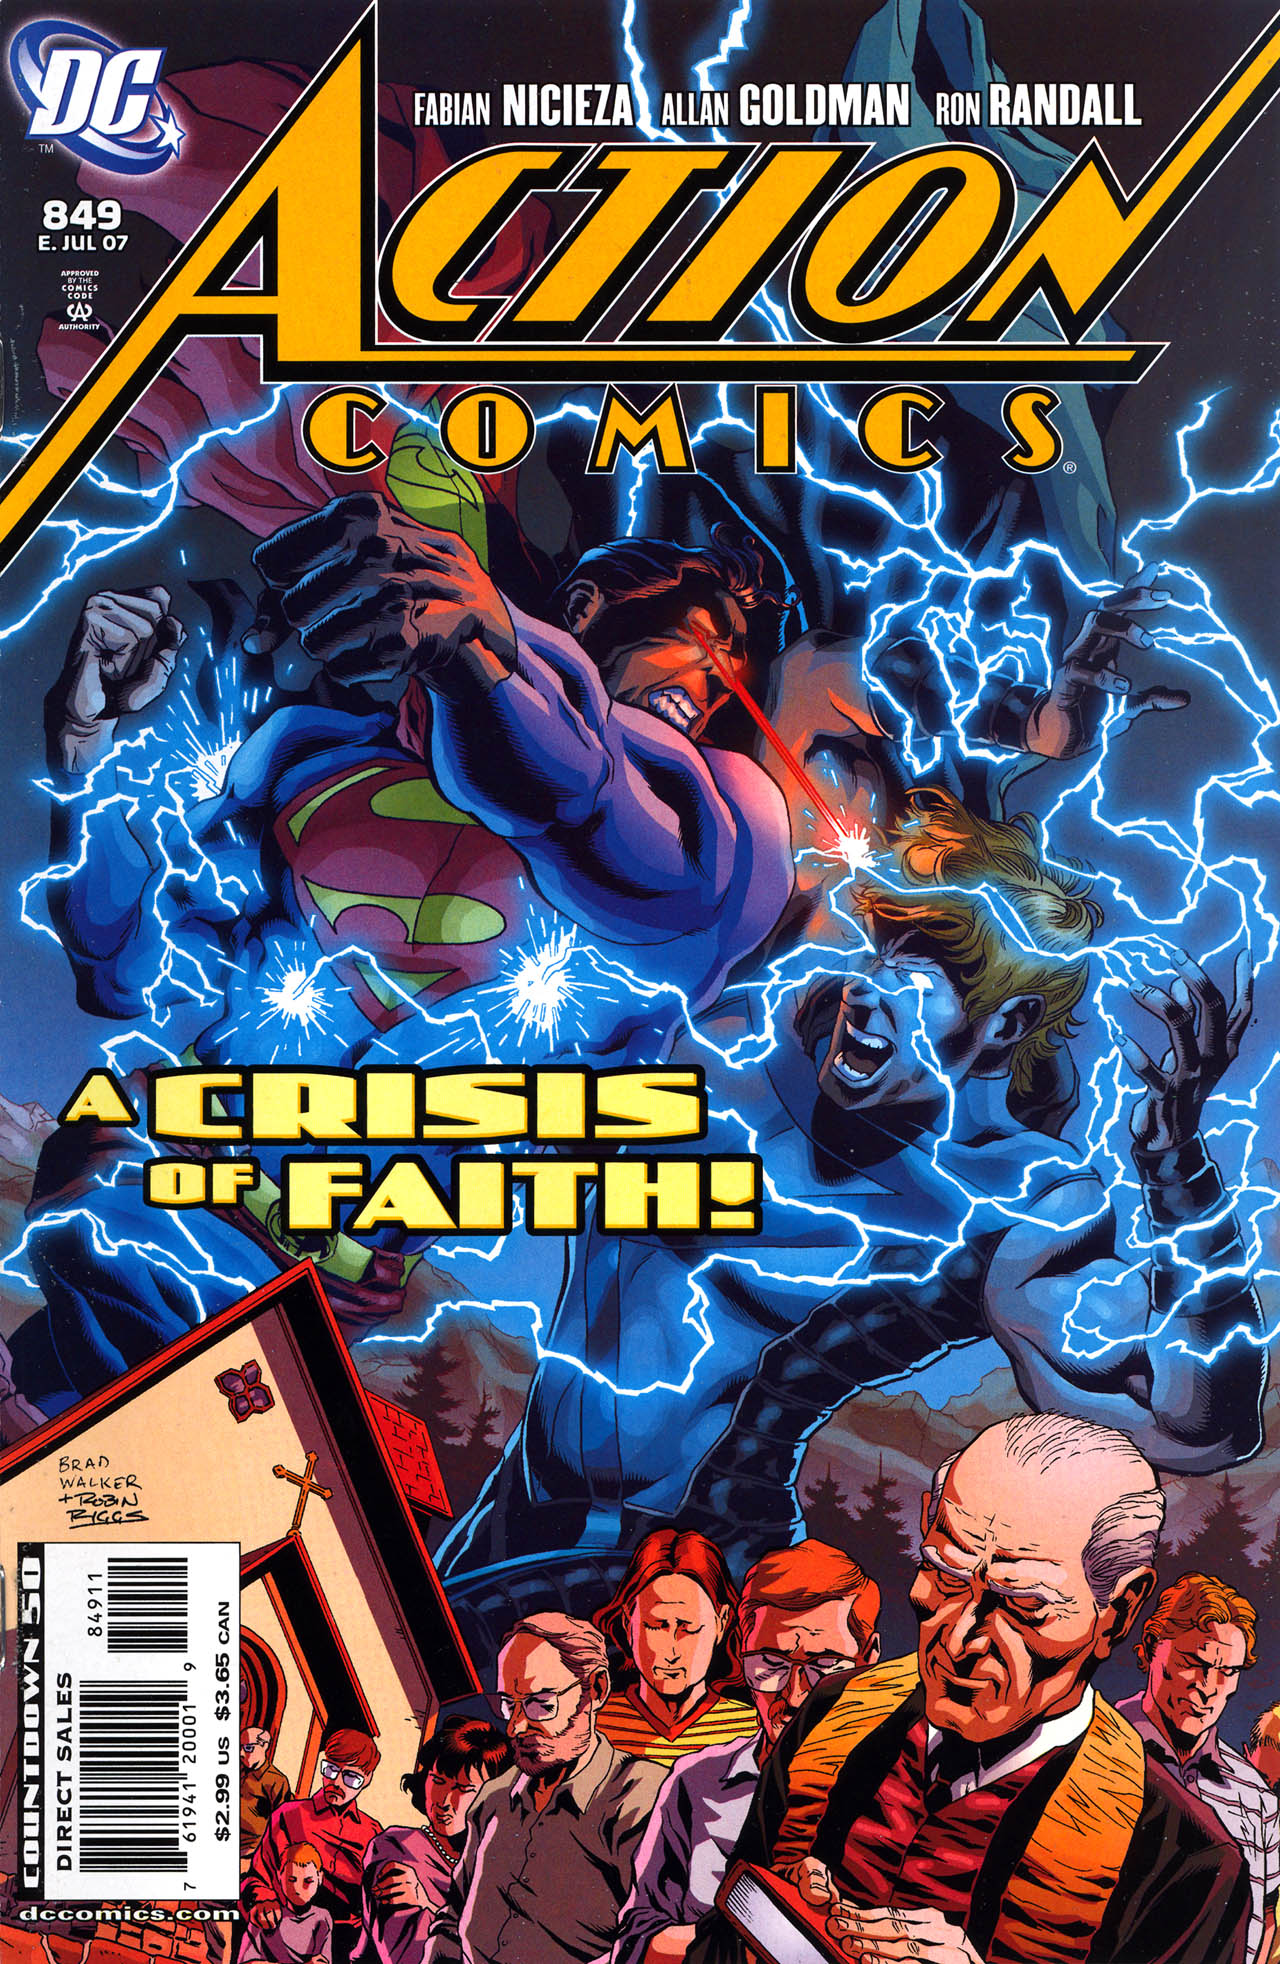 Read online Action Comics (1938) comic -  Issue #849 - 1